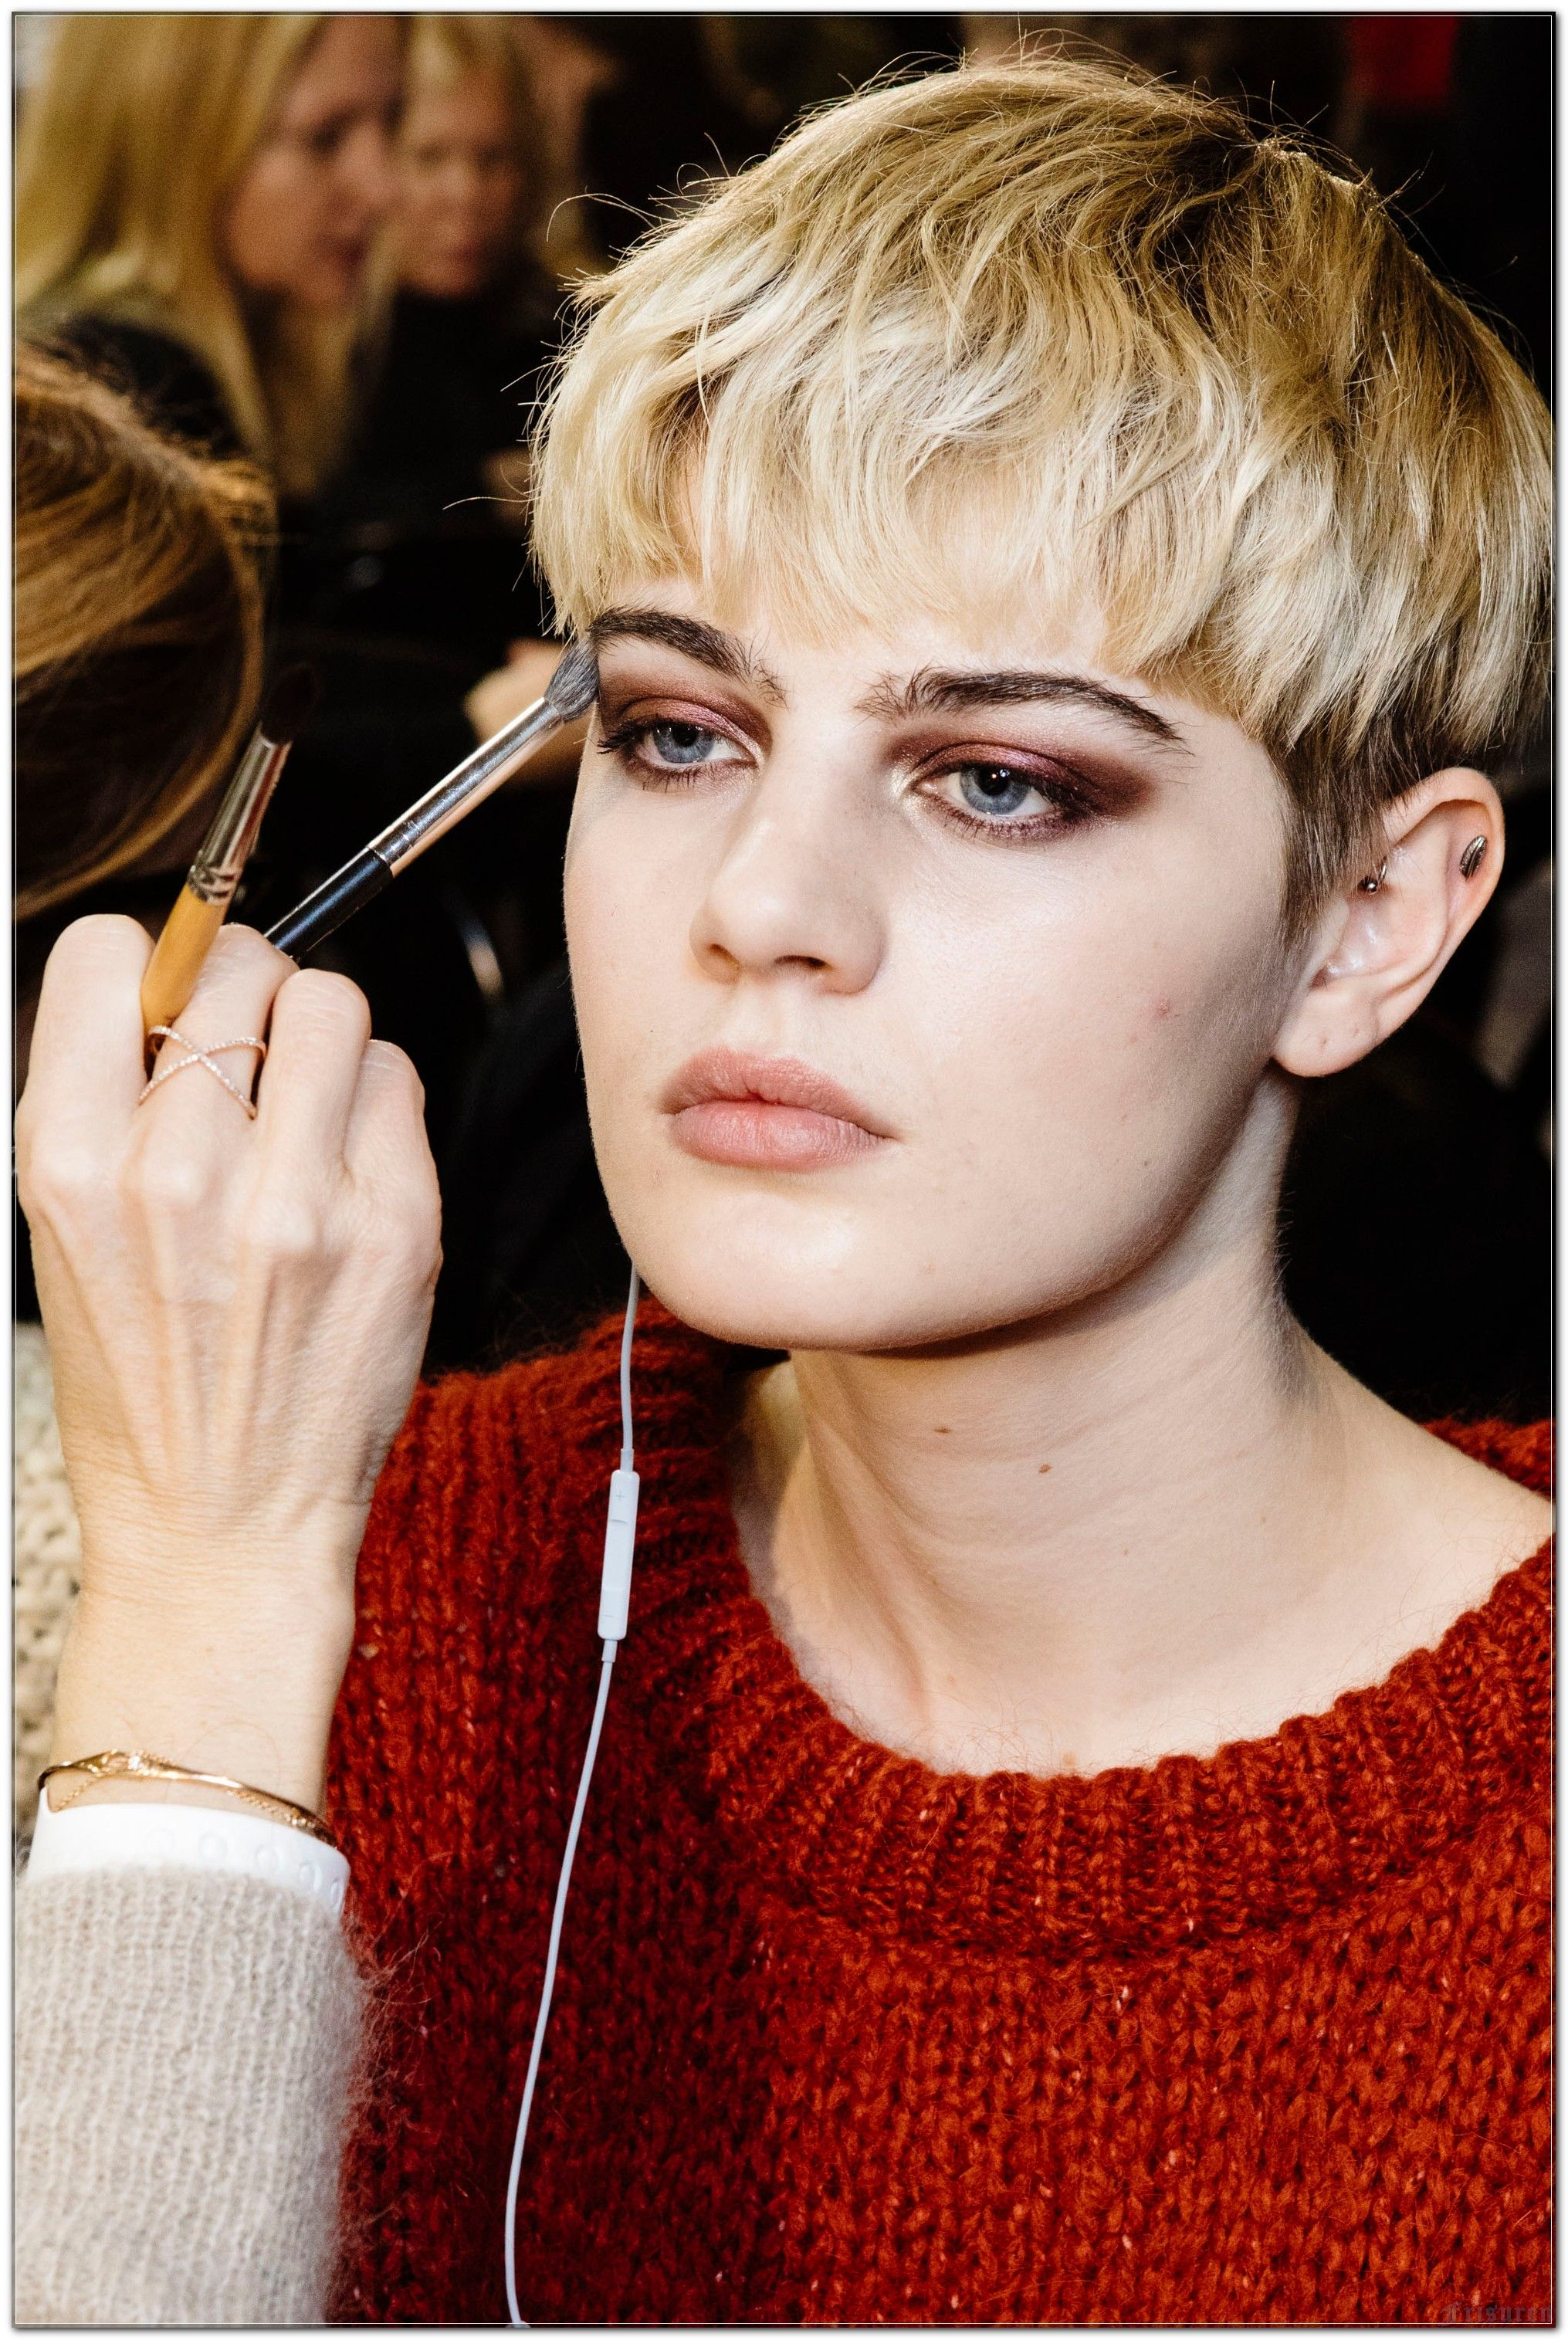 10 Tips That Will Make You Influential In Frisuren for 2021